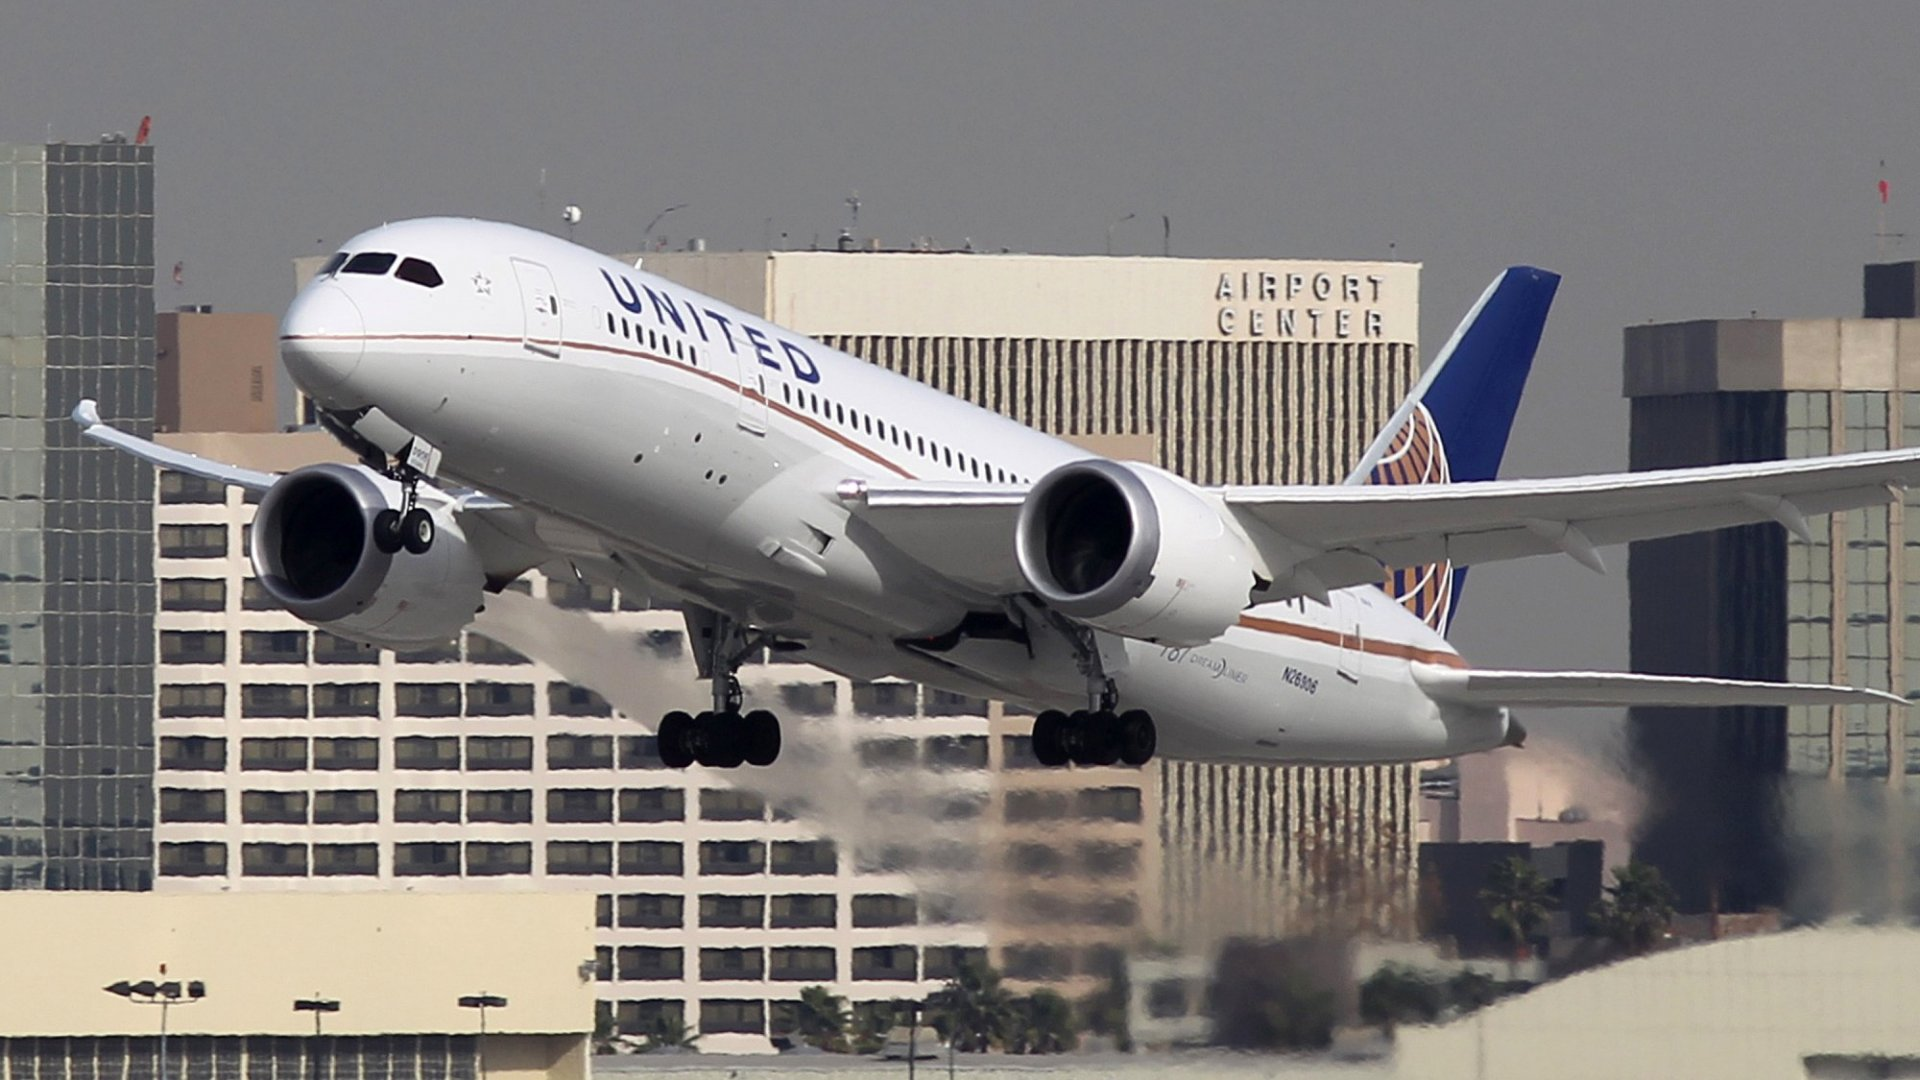 United Airlines Has a 1 Million Mile Contest. The Entries Are Quite Beautiful (It Ends Tuesday)